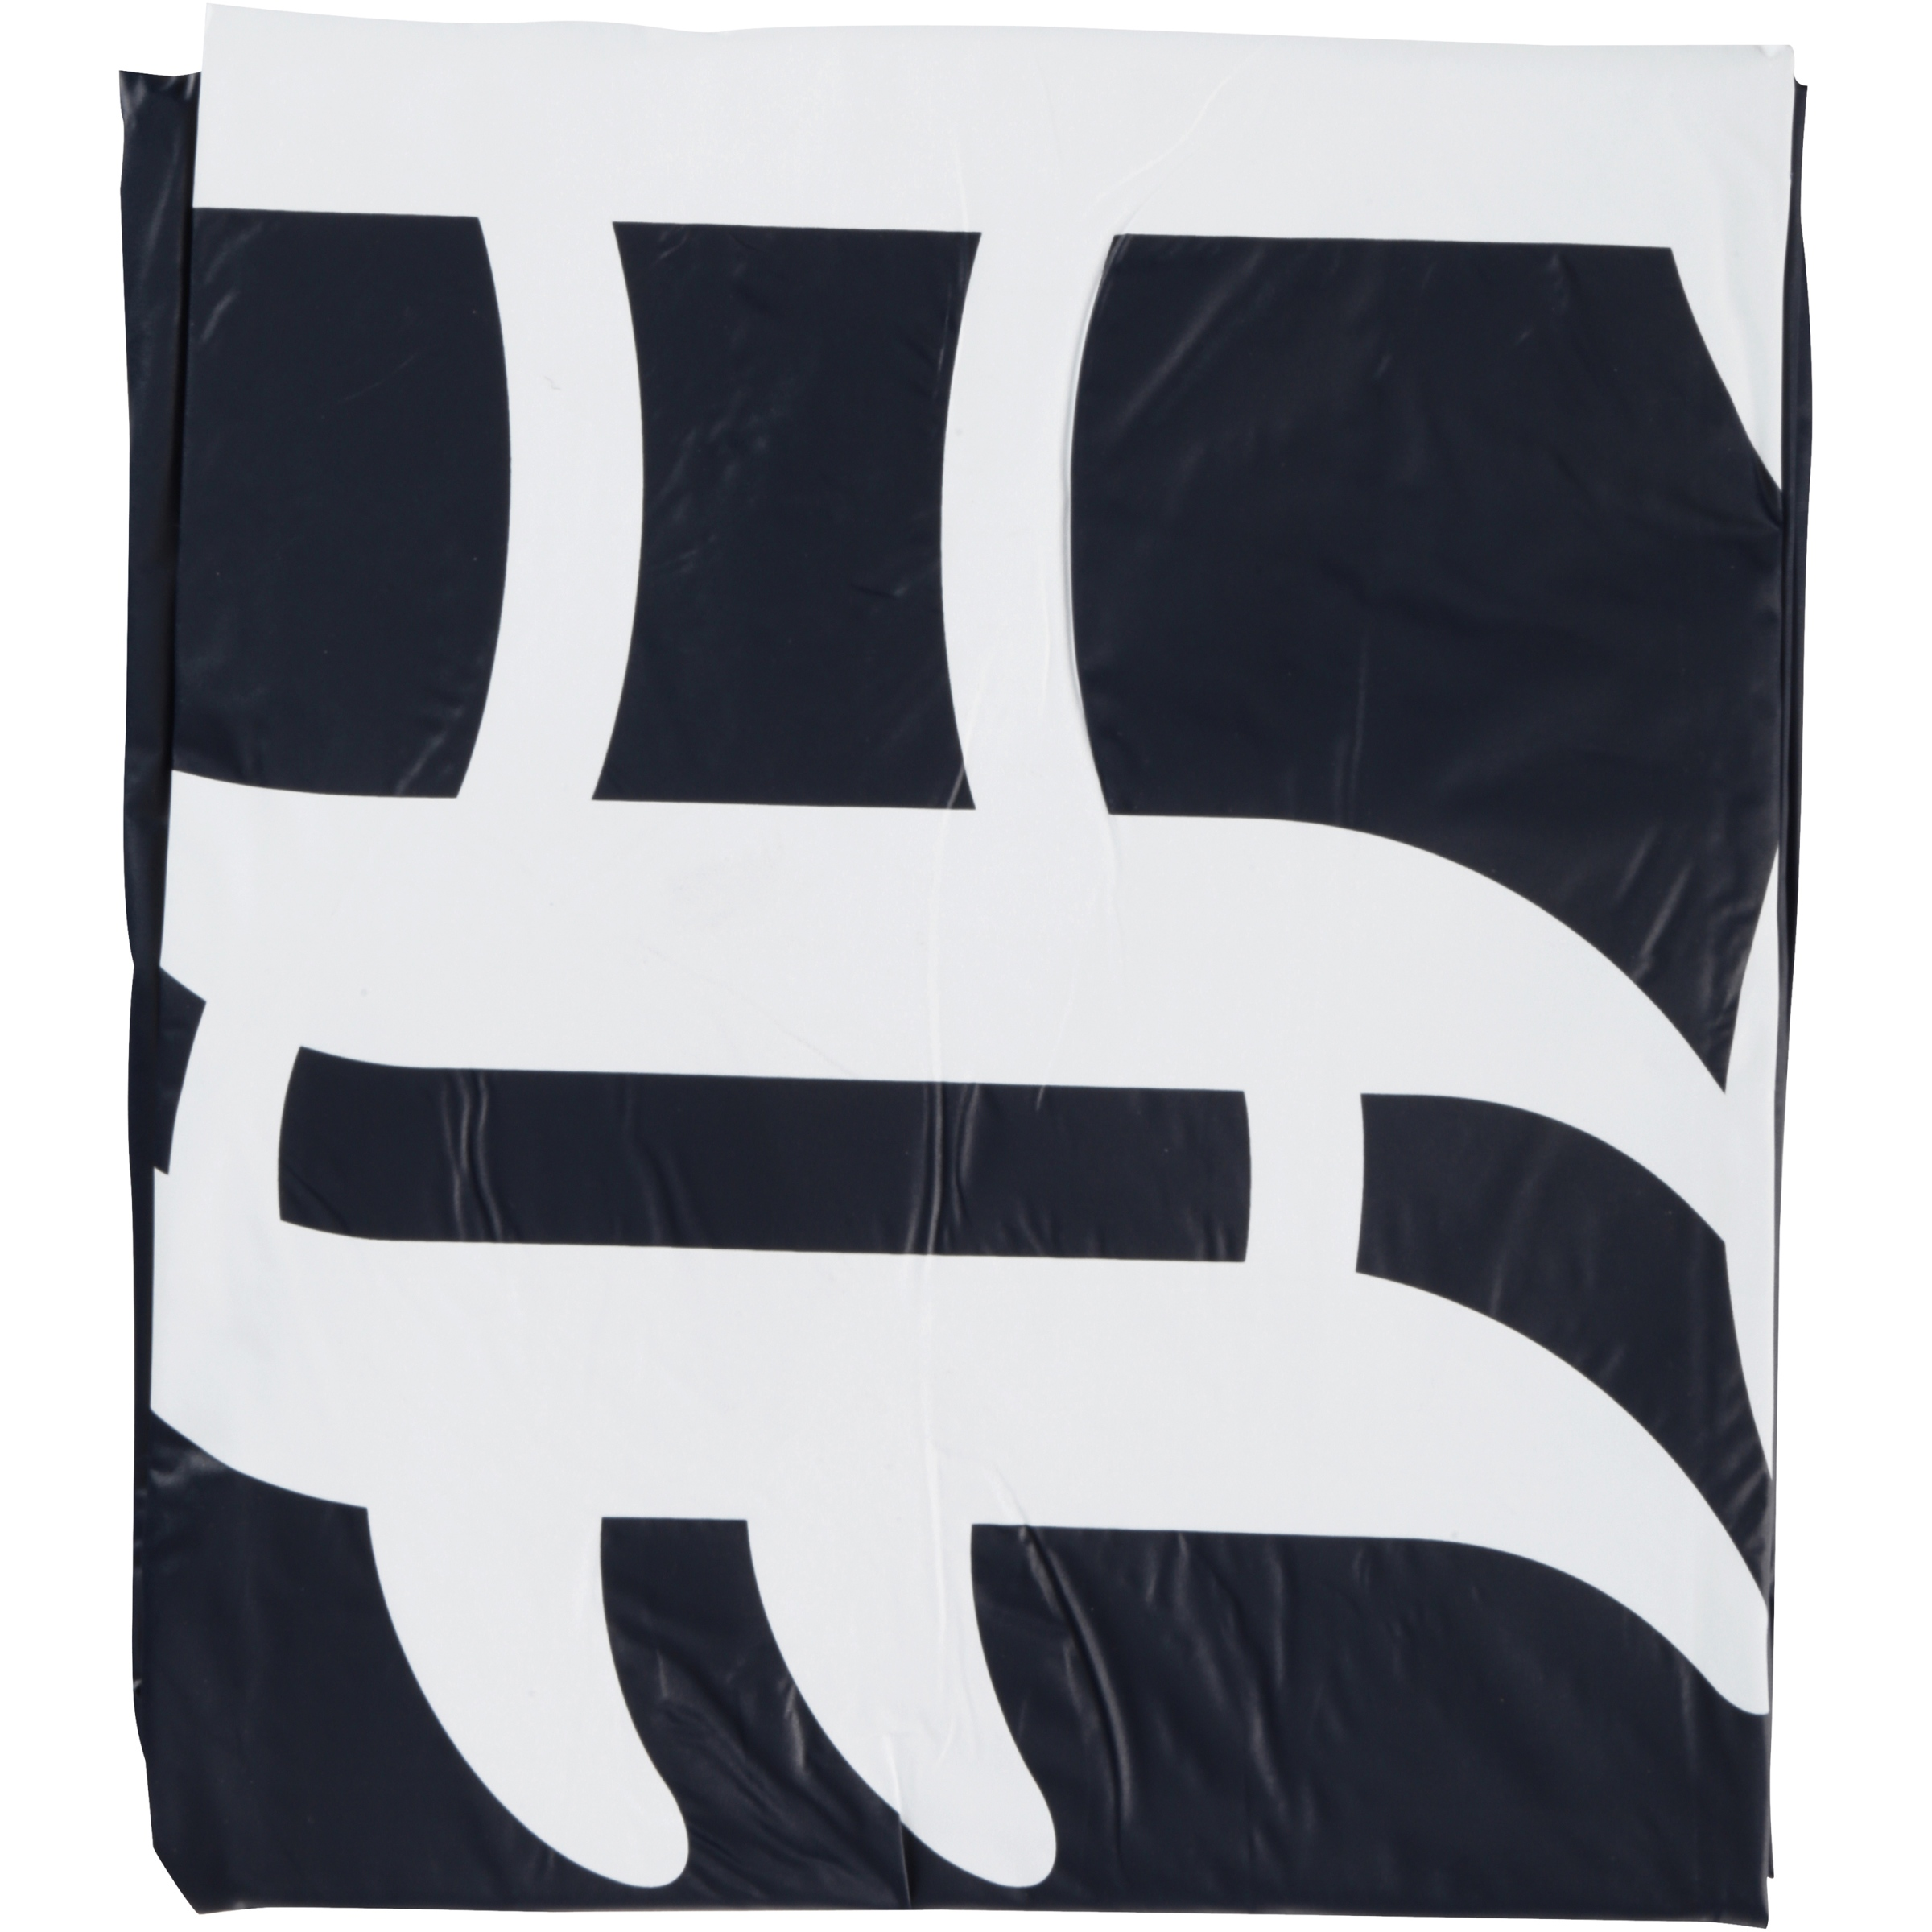 MLB Grill Cover - Generic Brand